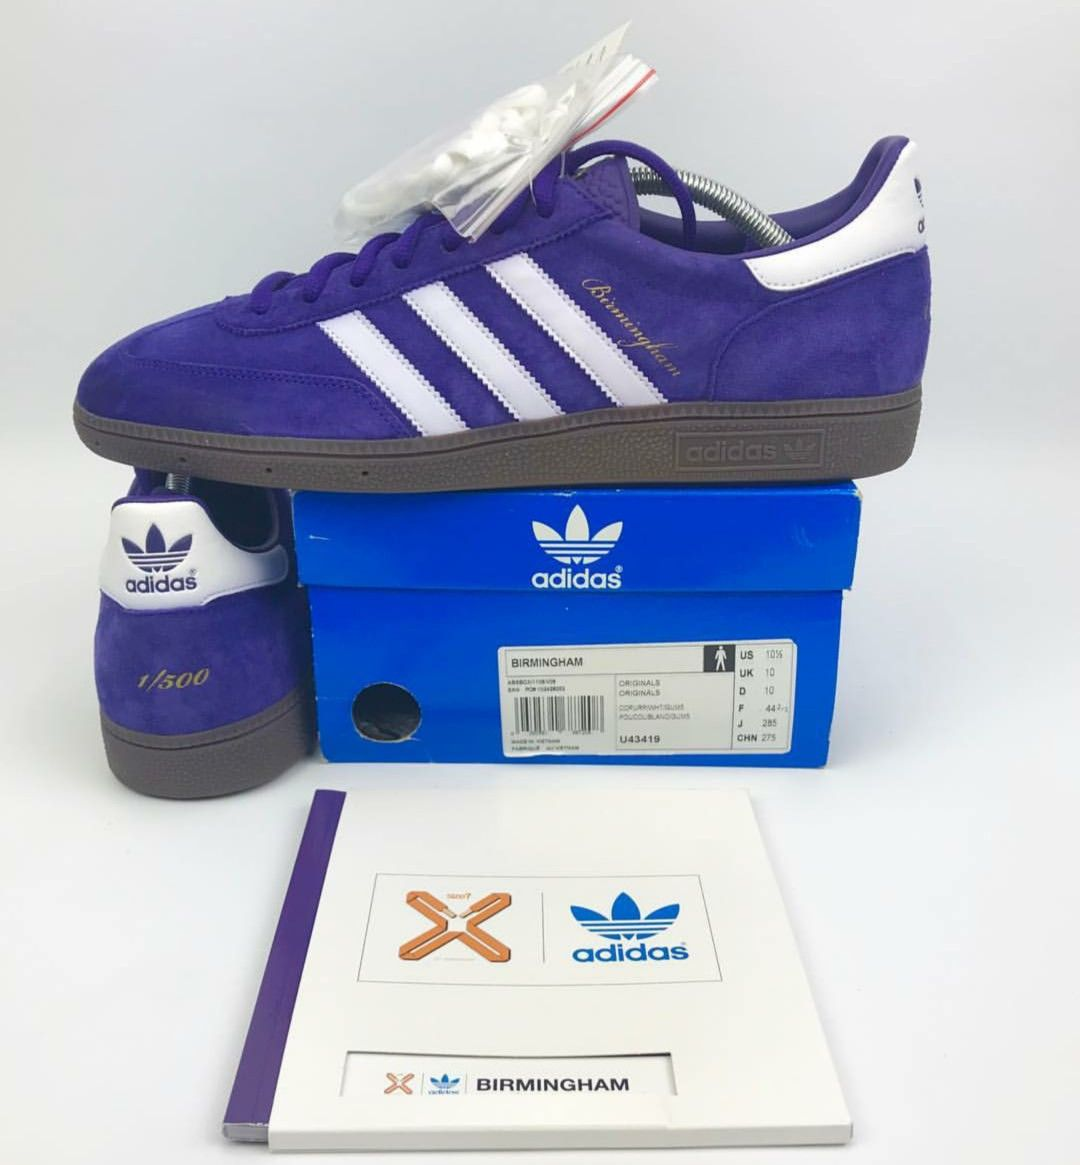 best loved c2d4b 12882 1500 Adidas Birmingham, Size 10th anniversary release plus 1250  Birmingham booklet.